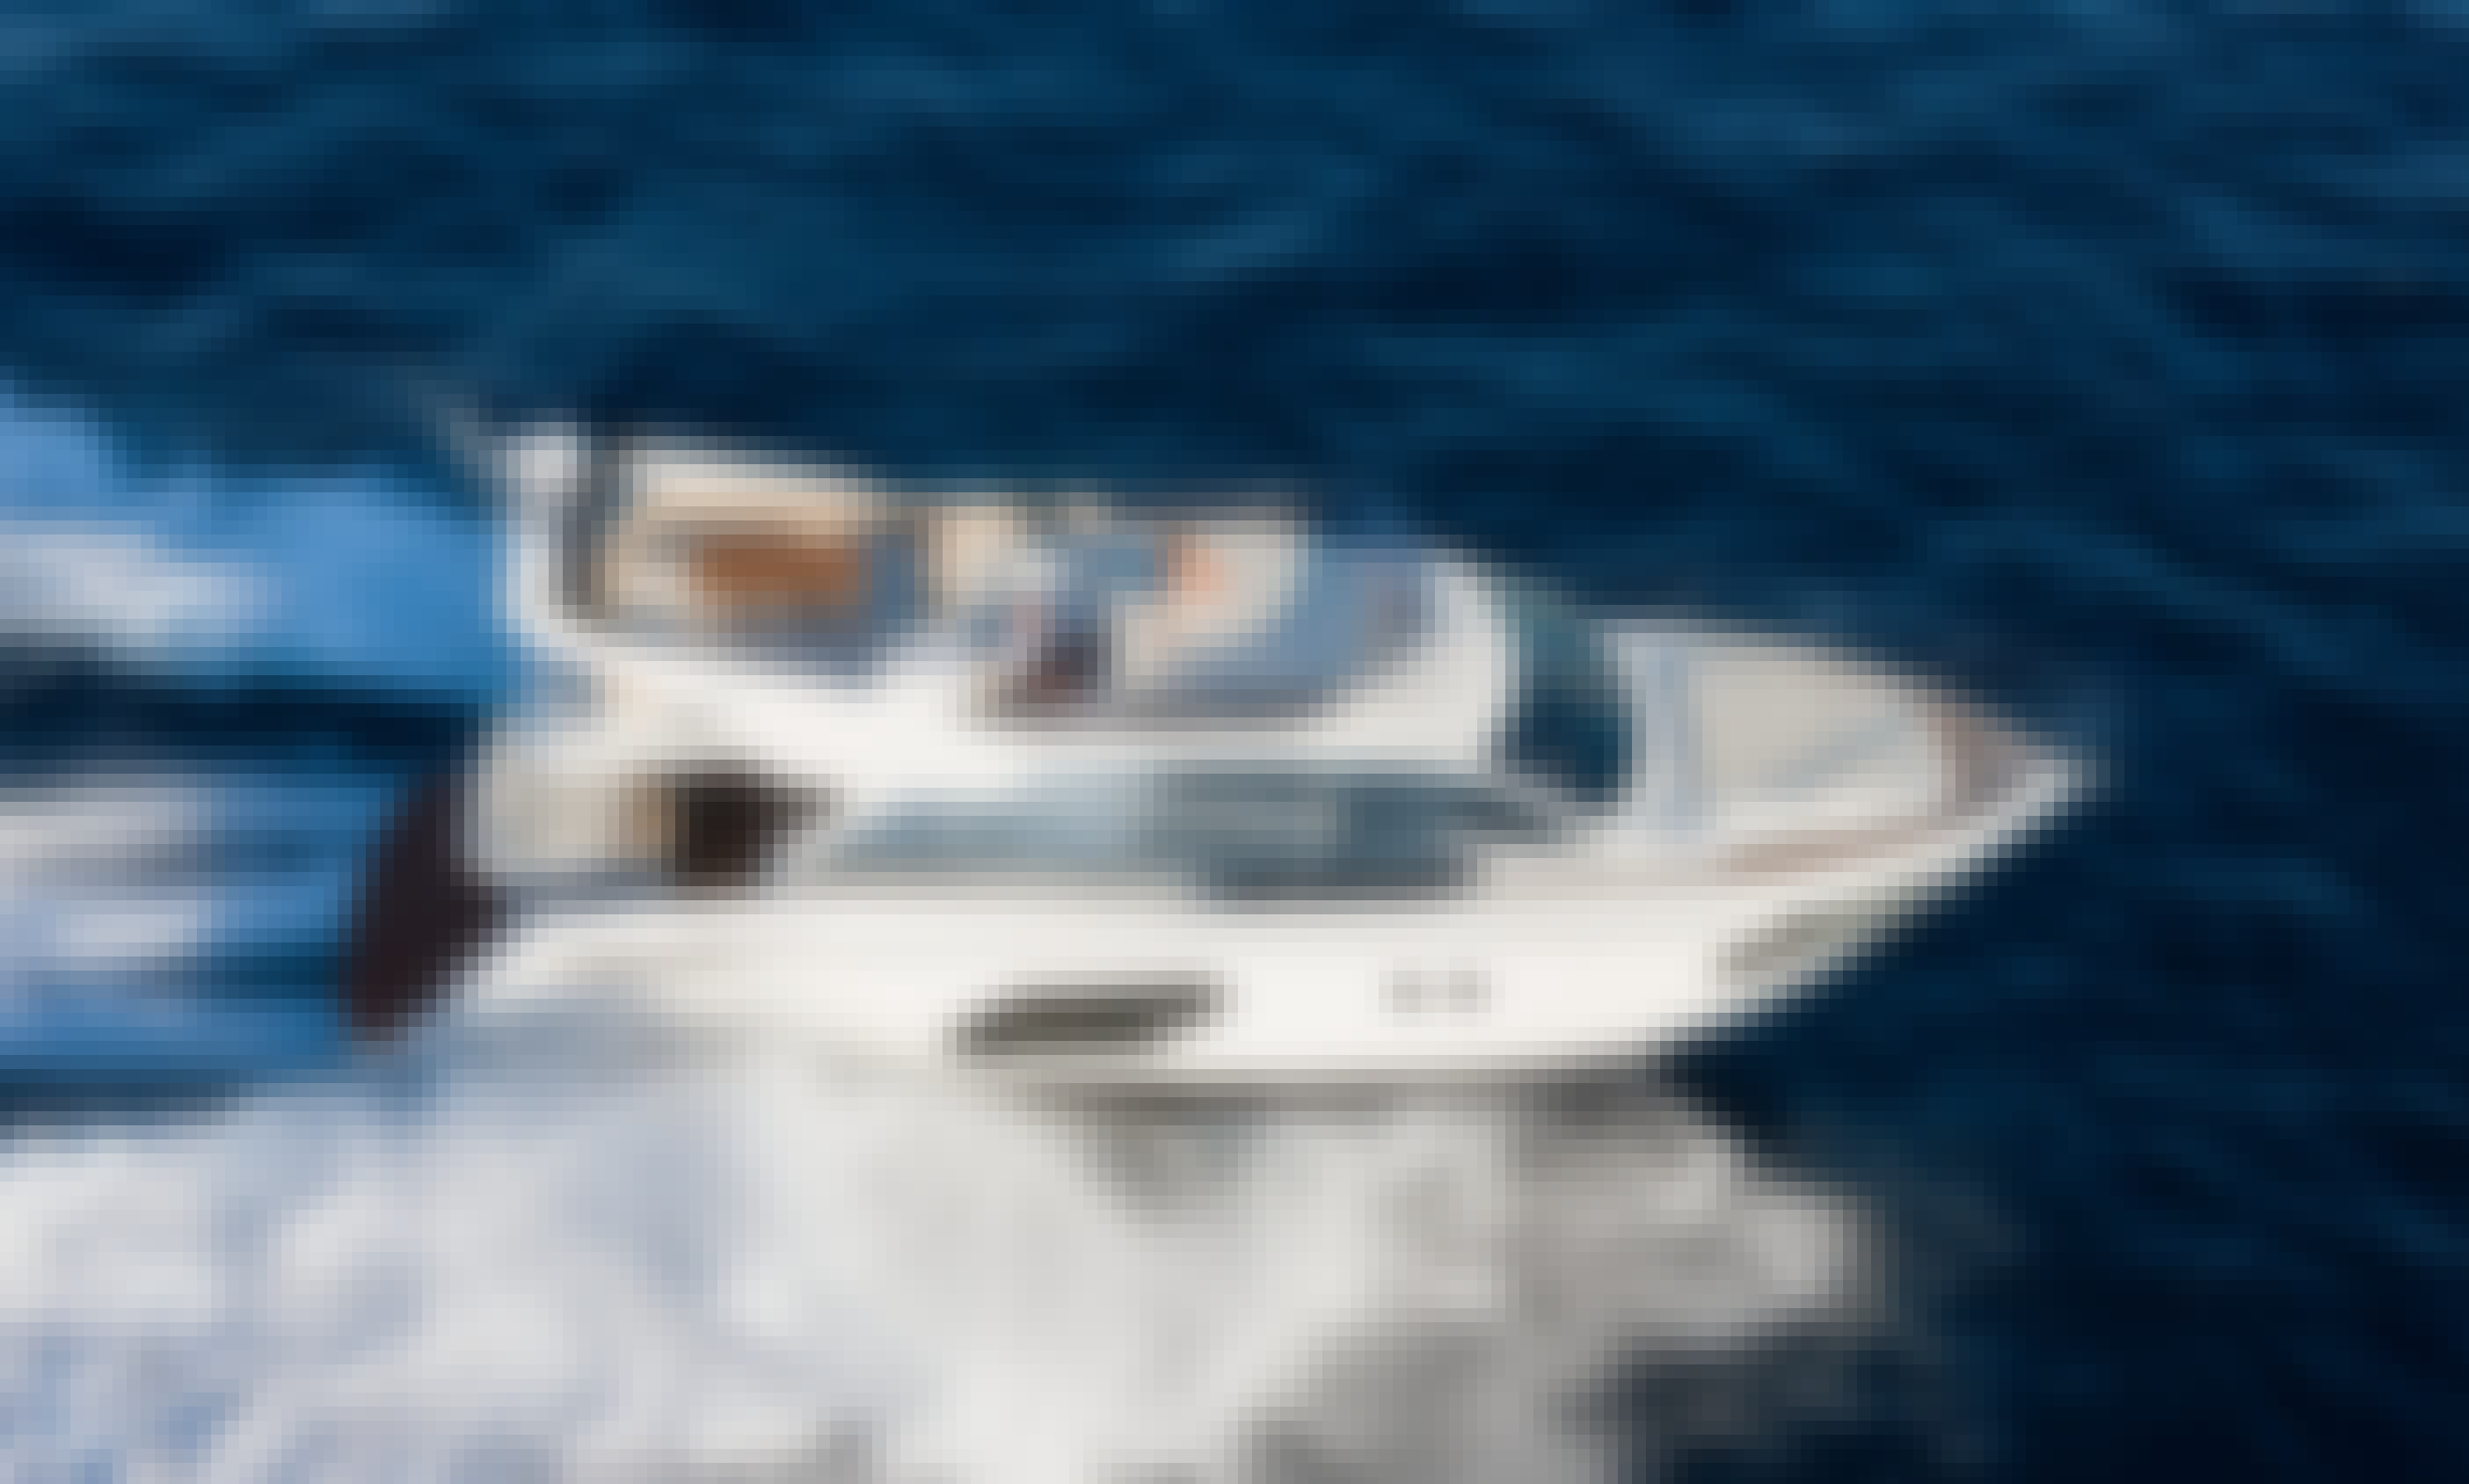 Luxury & brand new yacht of 16 meters - Grab the 15% discount until end of March 2020!